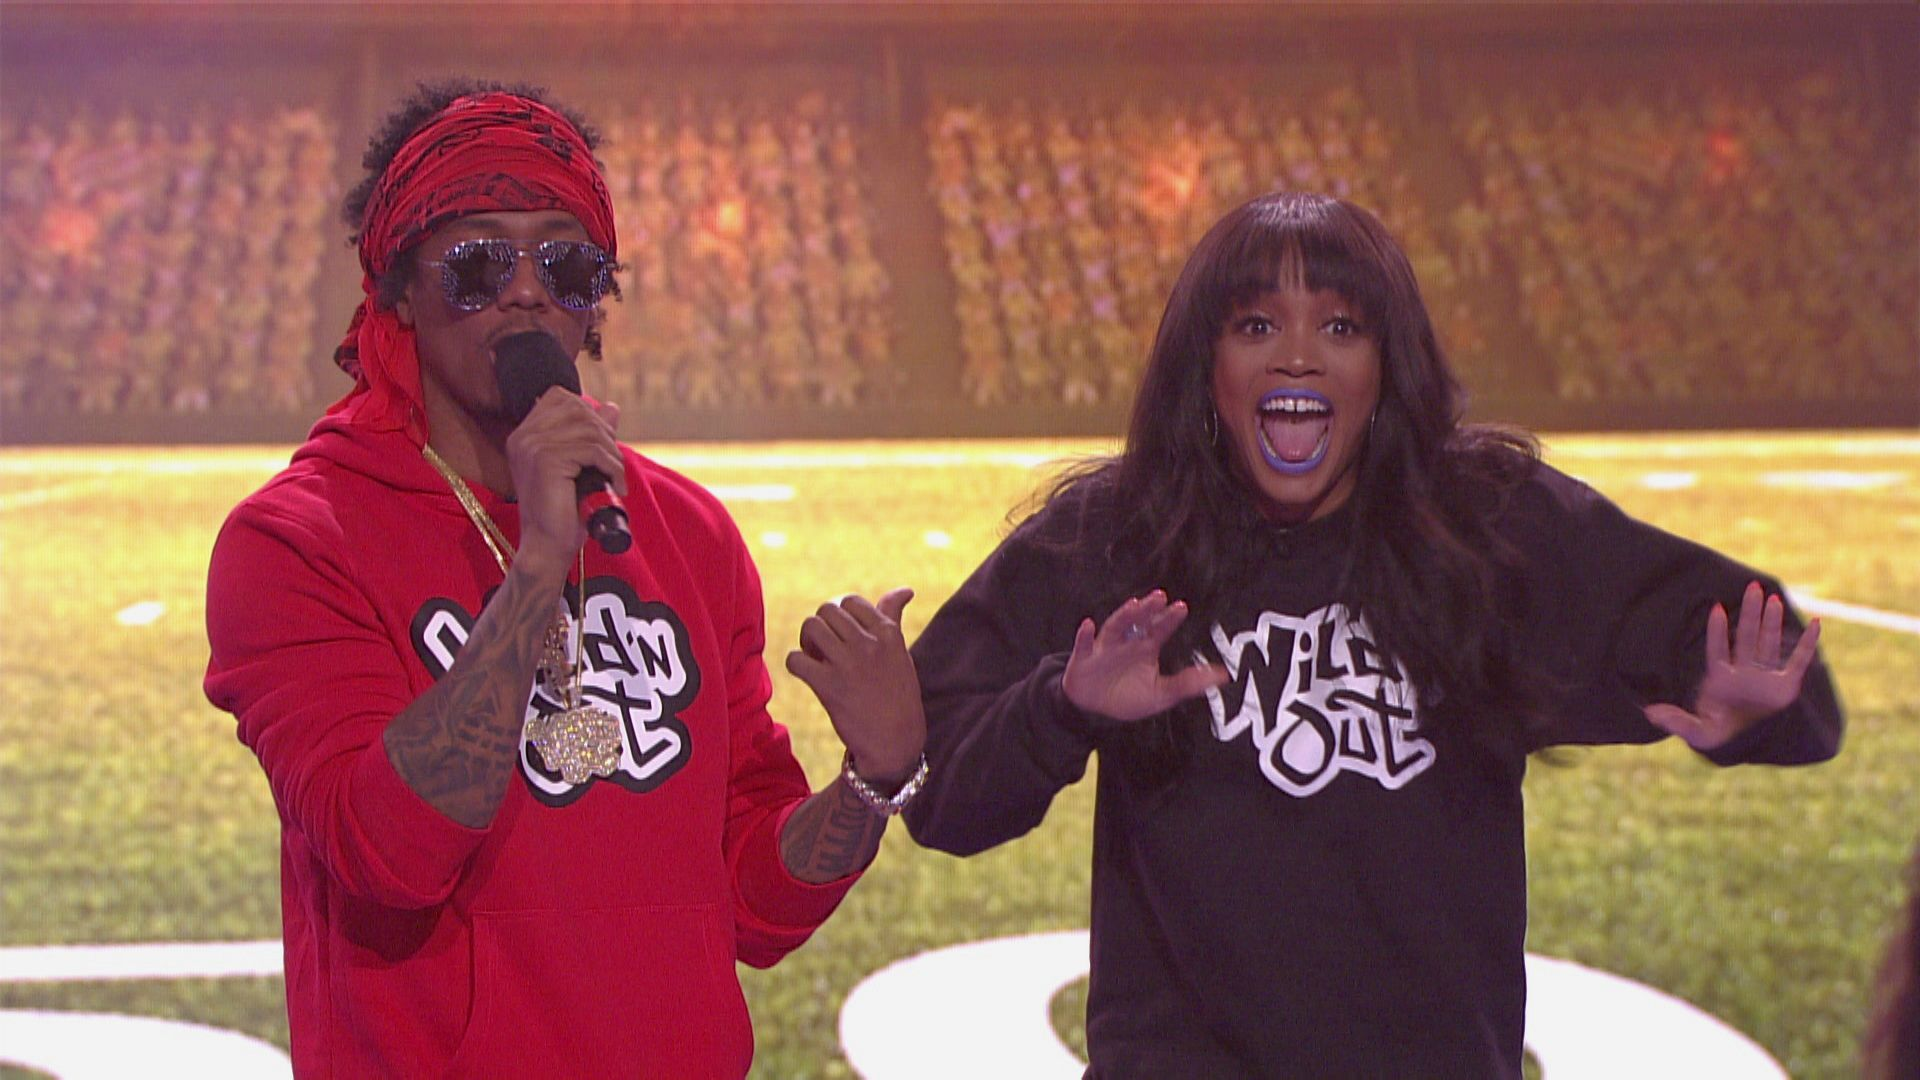 Nick Cannon Presents: Wild \'N Out Season 11 Episode 13